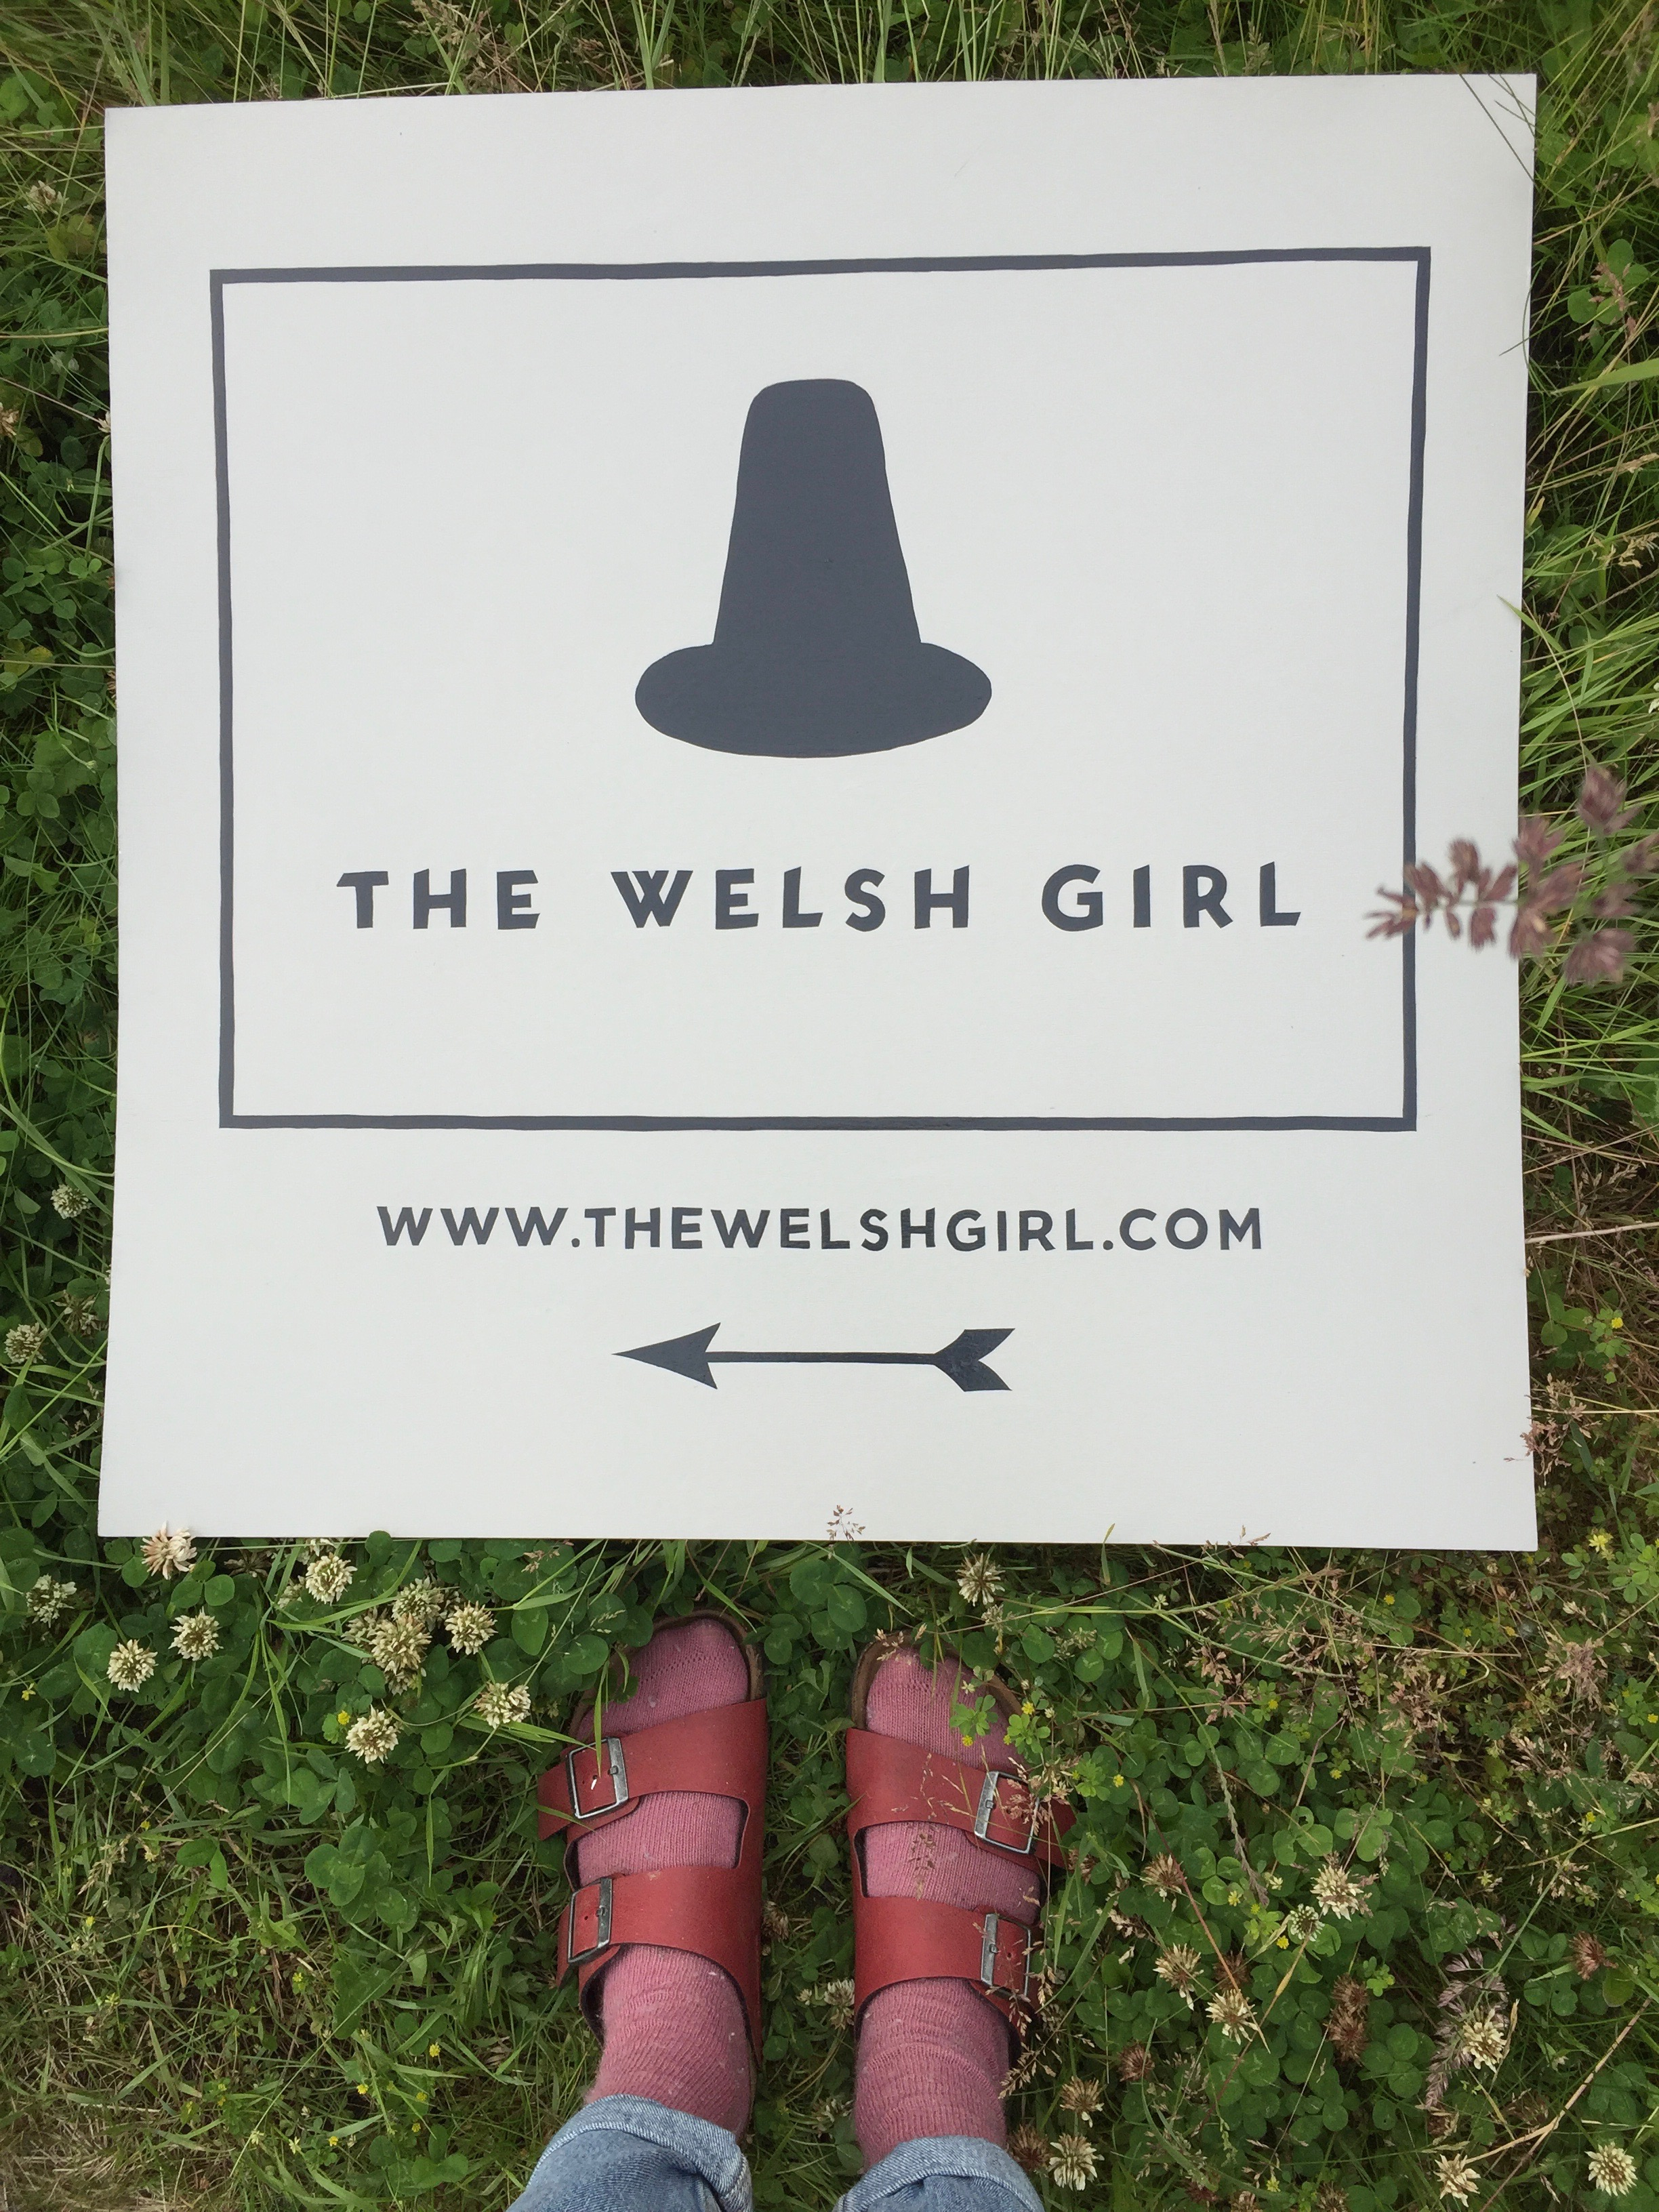 The Welsh Girl, Hay-on-Wye